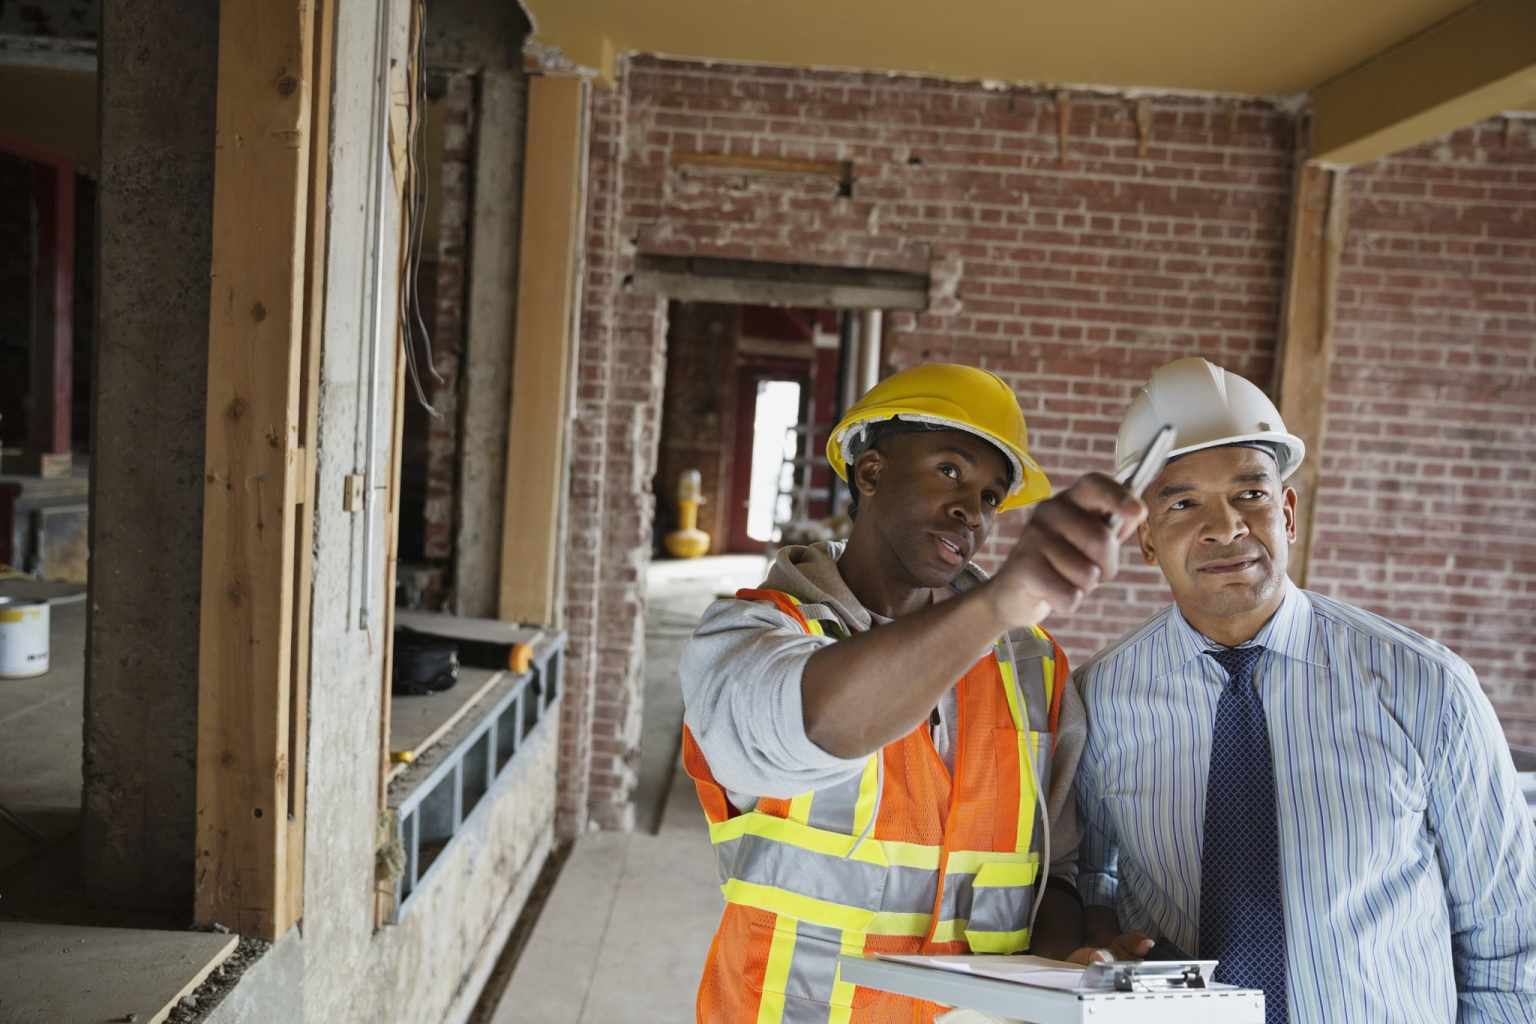 Two Men Speaking at Construction Site